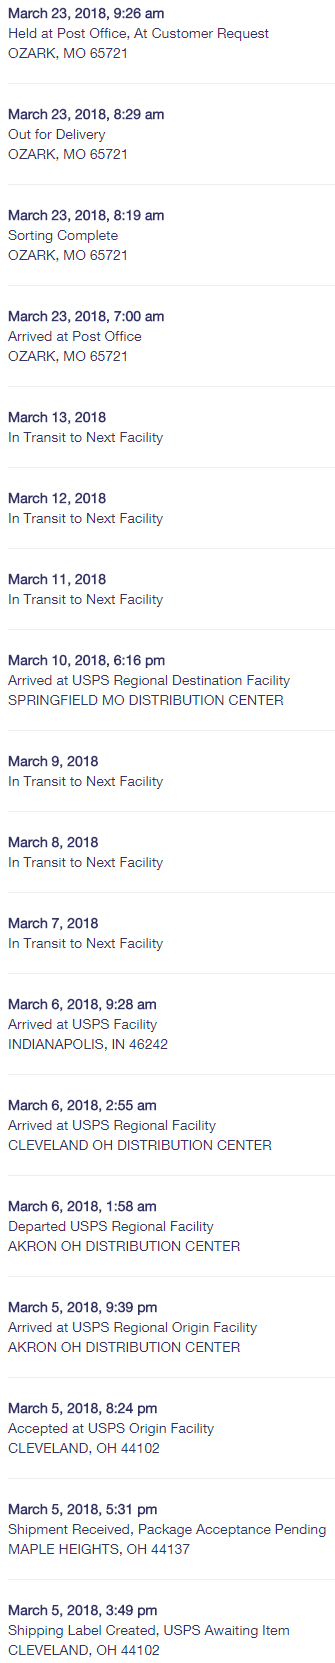 When the USPS says, 'Item currently in transit to the destination